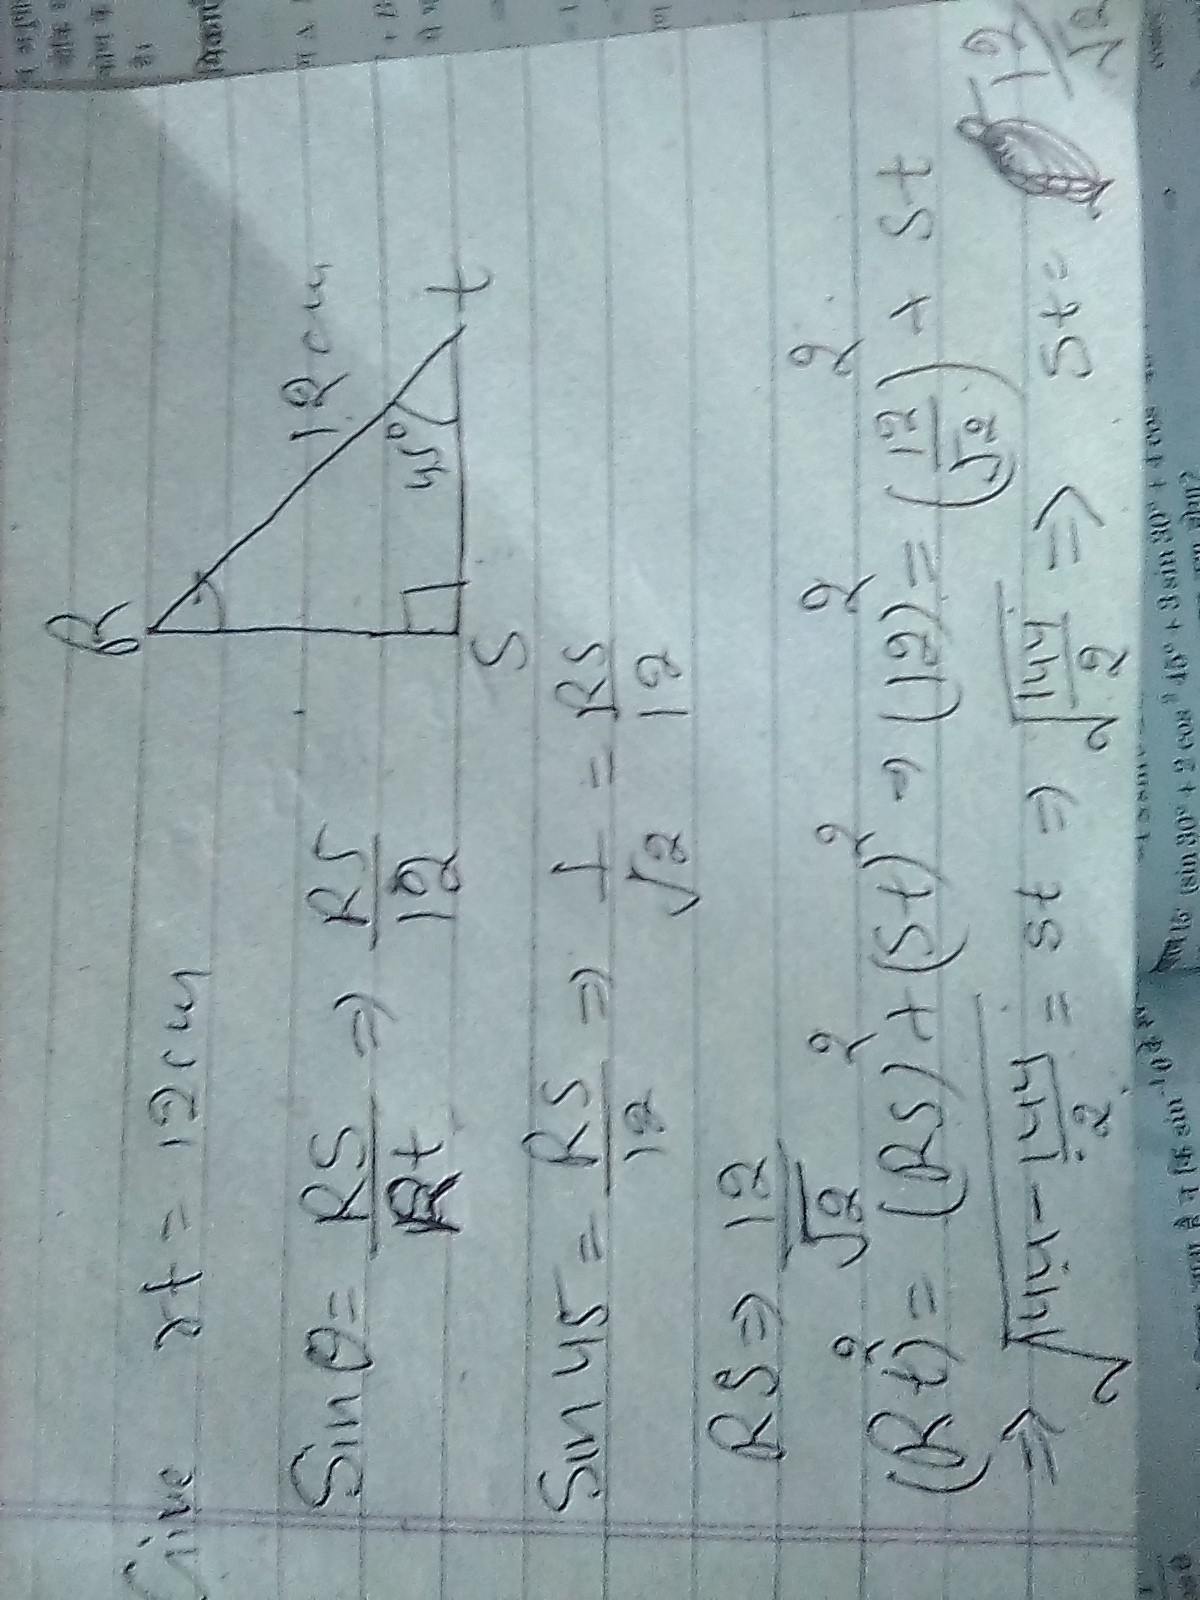 In Triangle Rst Angle S 90 Angle T 45 Rt 12 Find Rs